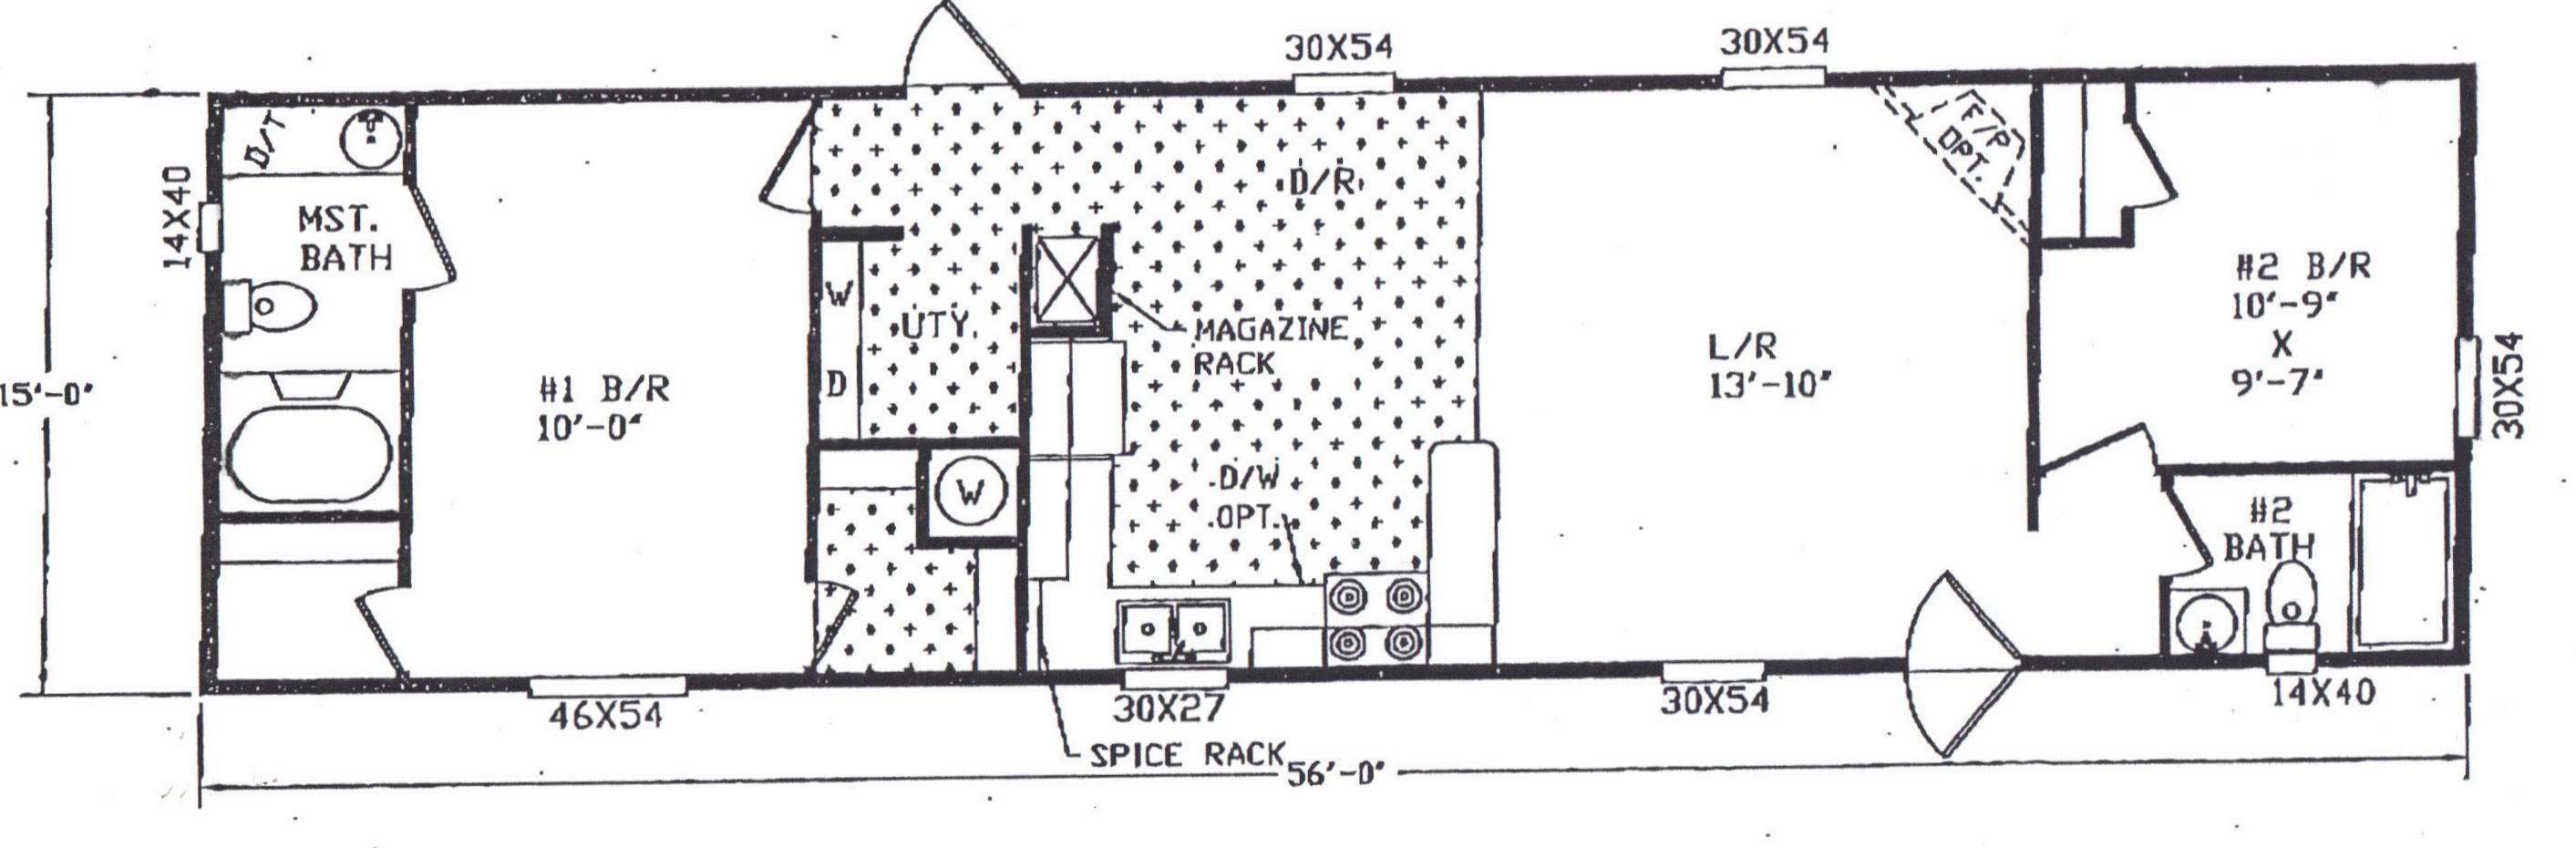 725CT Single Wide Mobile Home Floor Plan